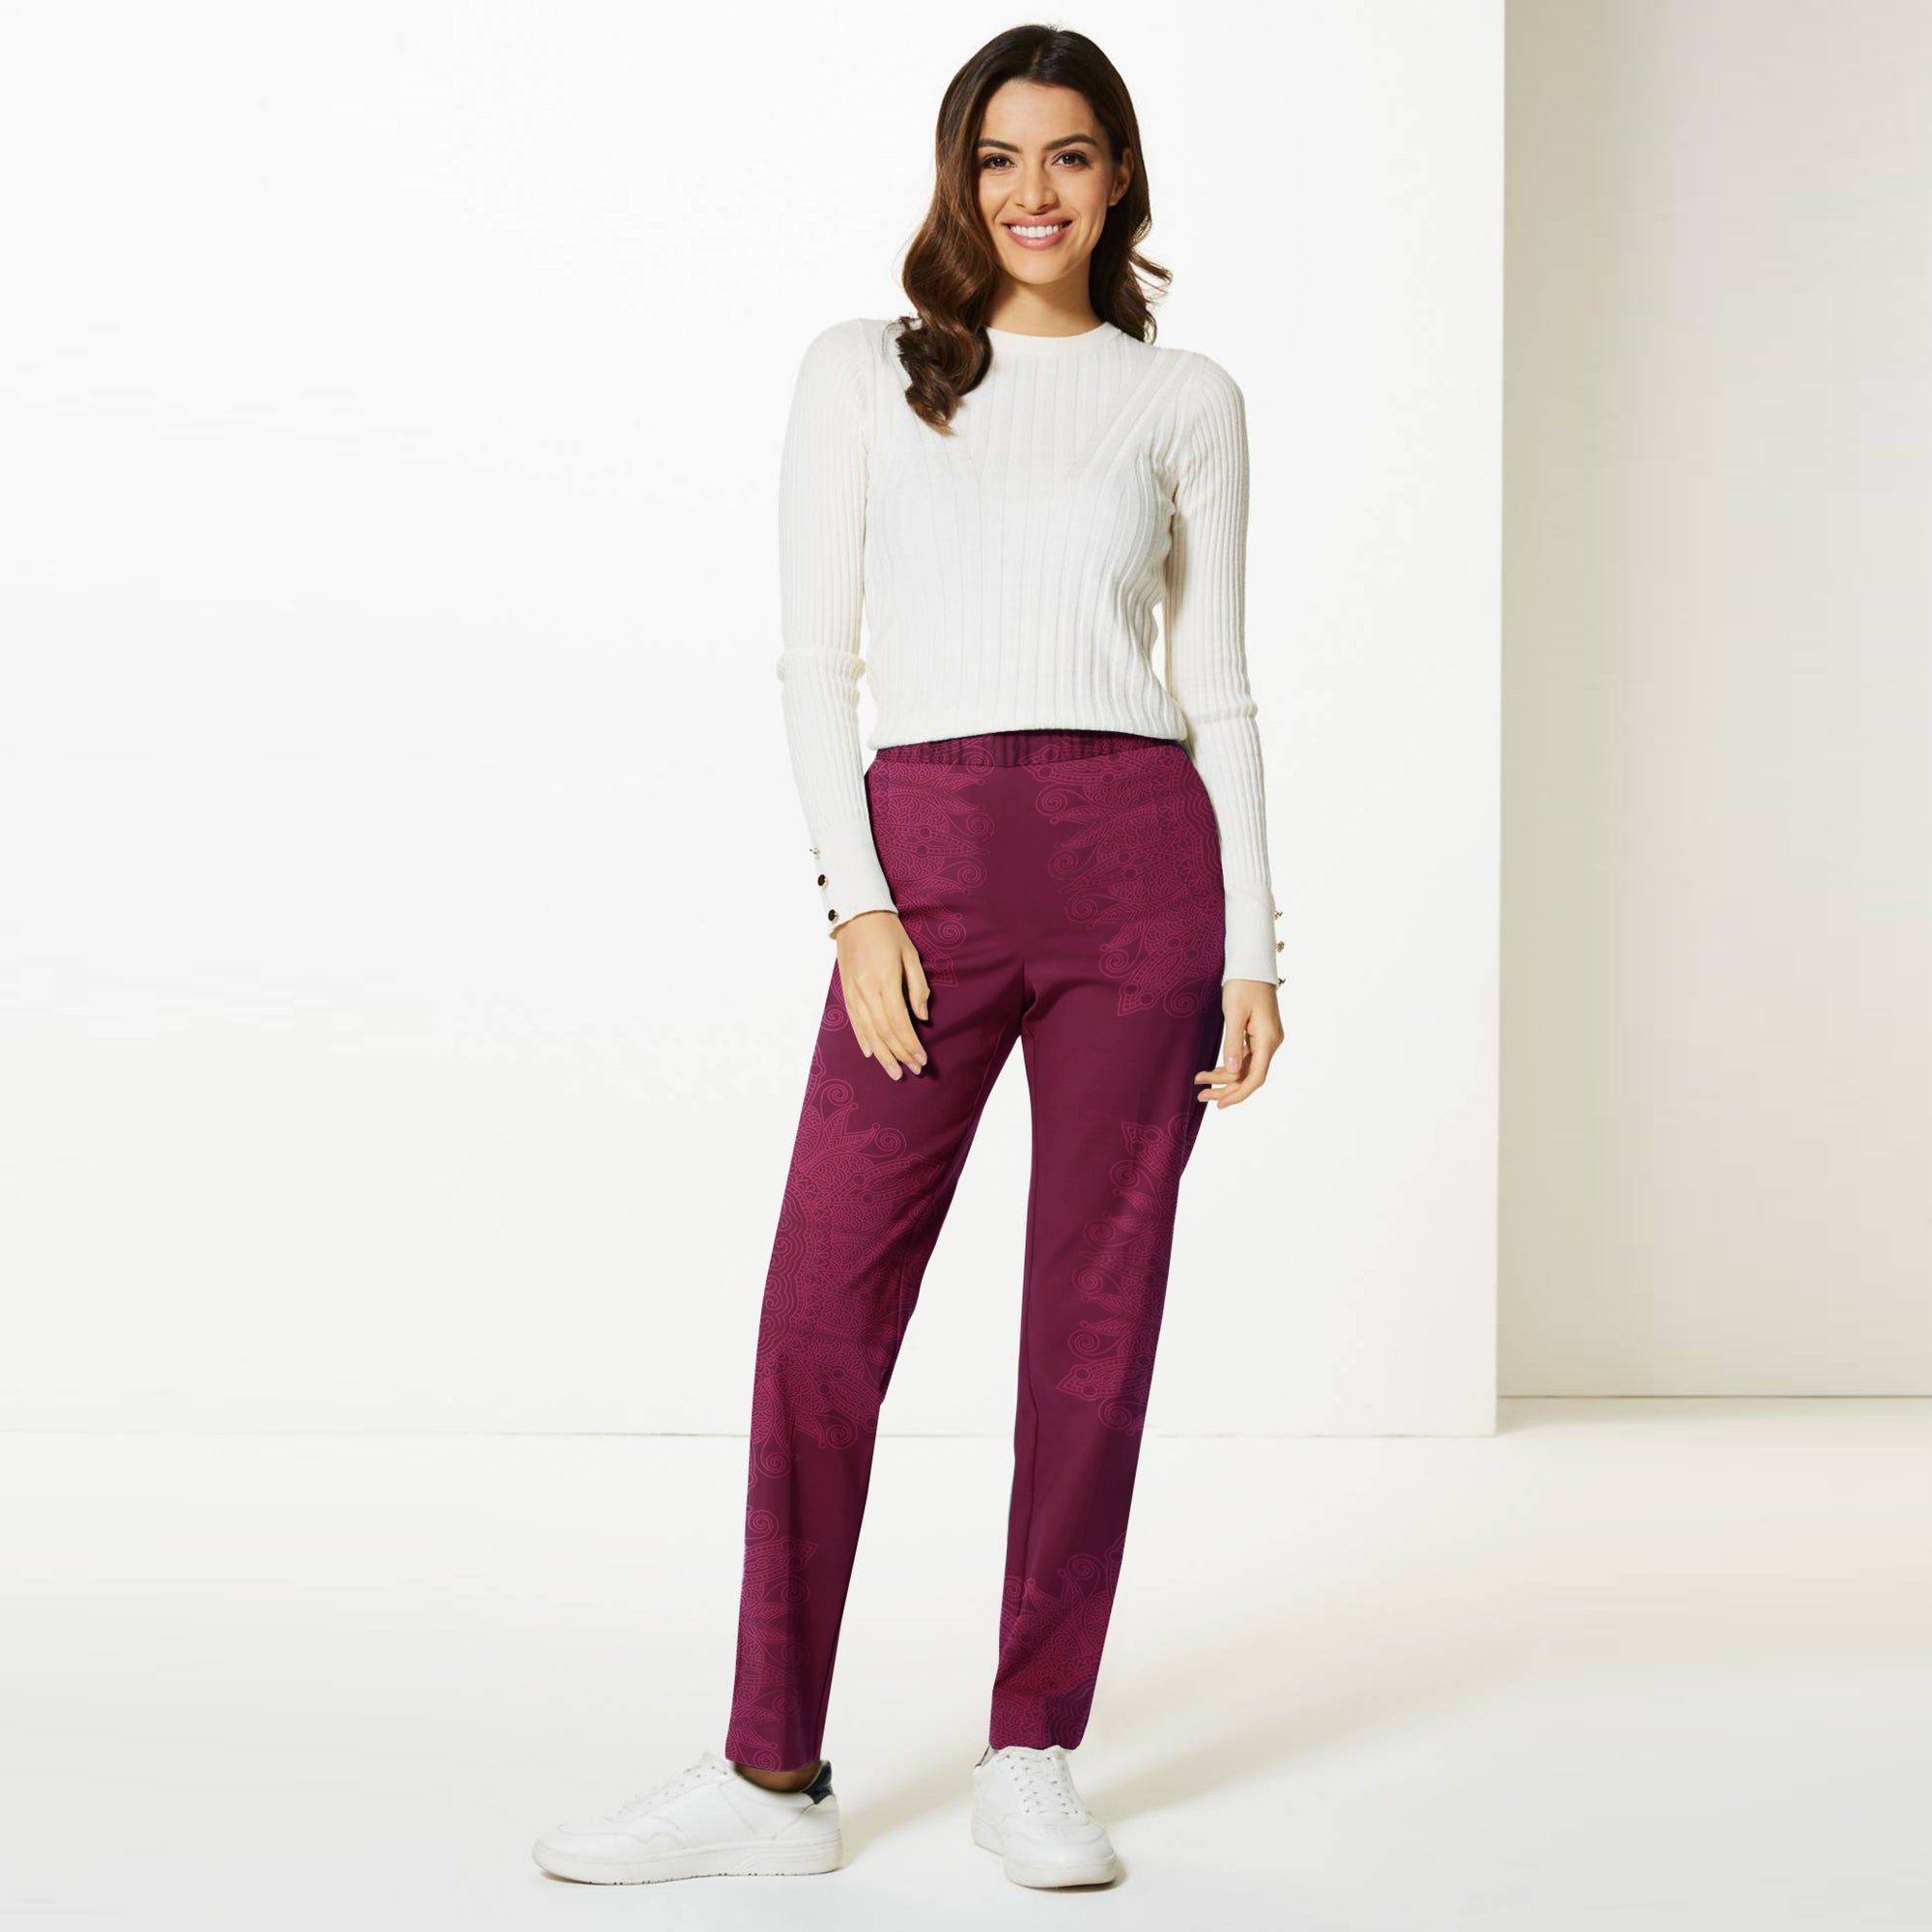 Next Straight Fit Cotton Trouser For Ladies-Dark Maroon with Print-BE8648